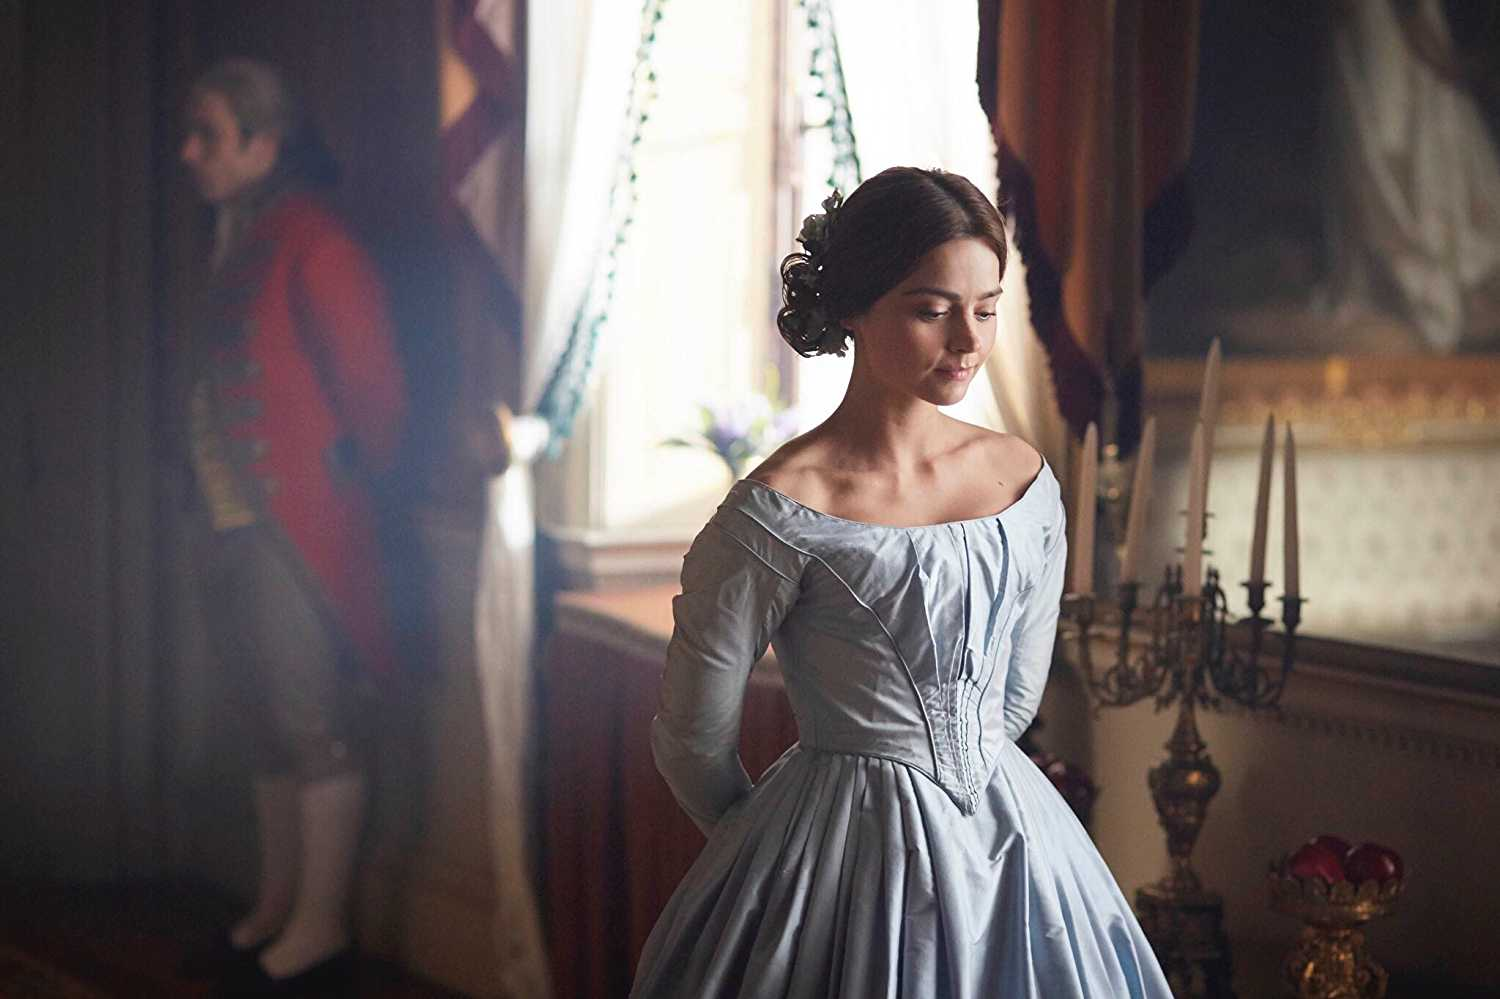 Coleman played the young Victoria who became Queen at the age of 18. (IMDb)